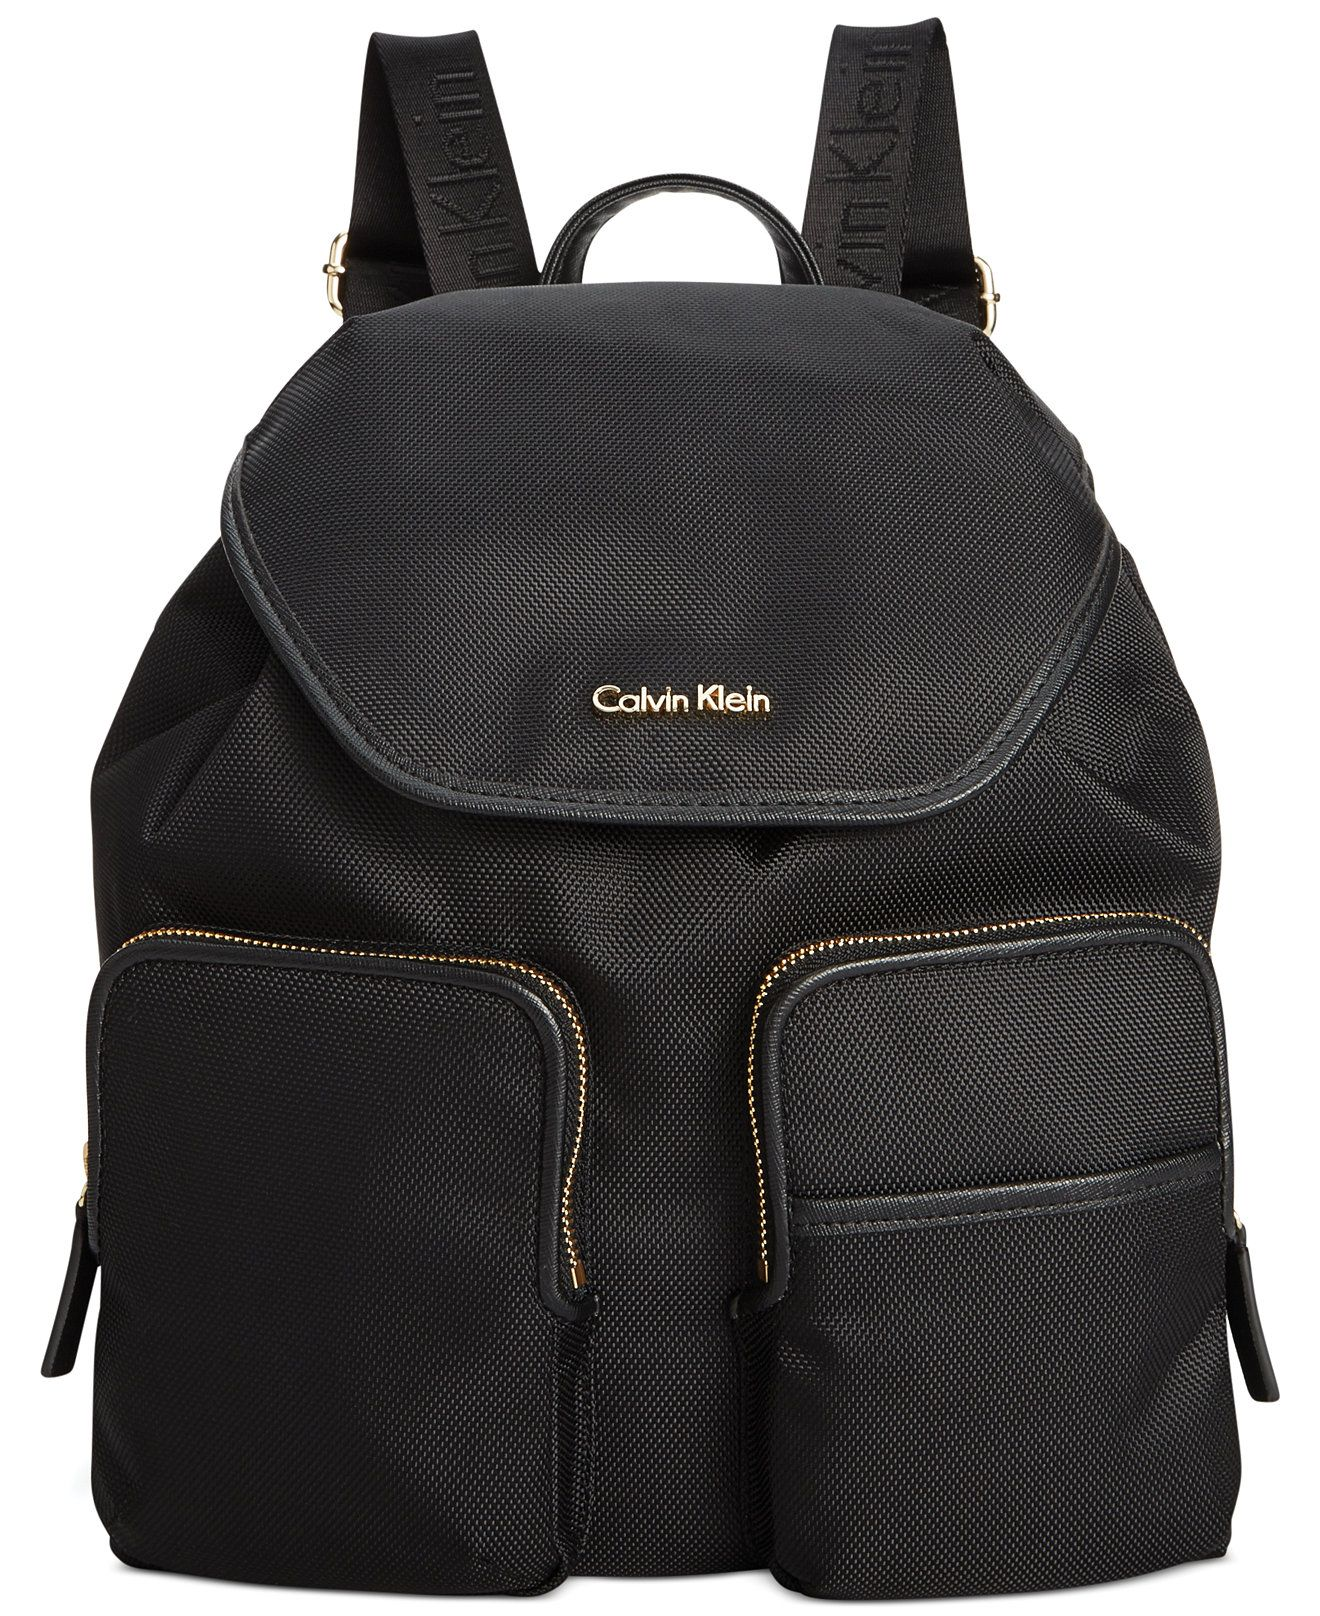 calvin klein parker ballistic nylon backpack backpacks